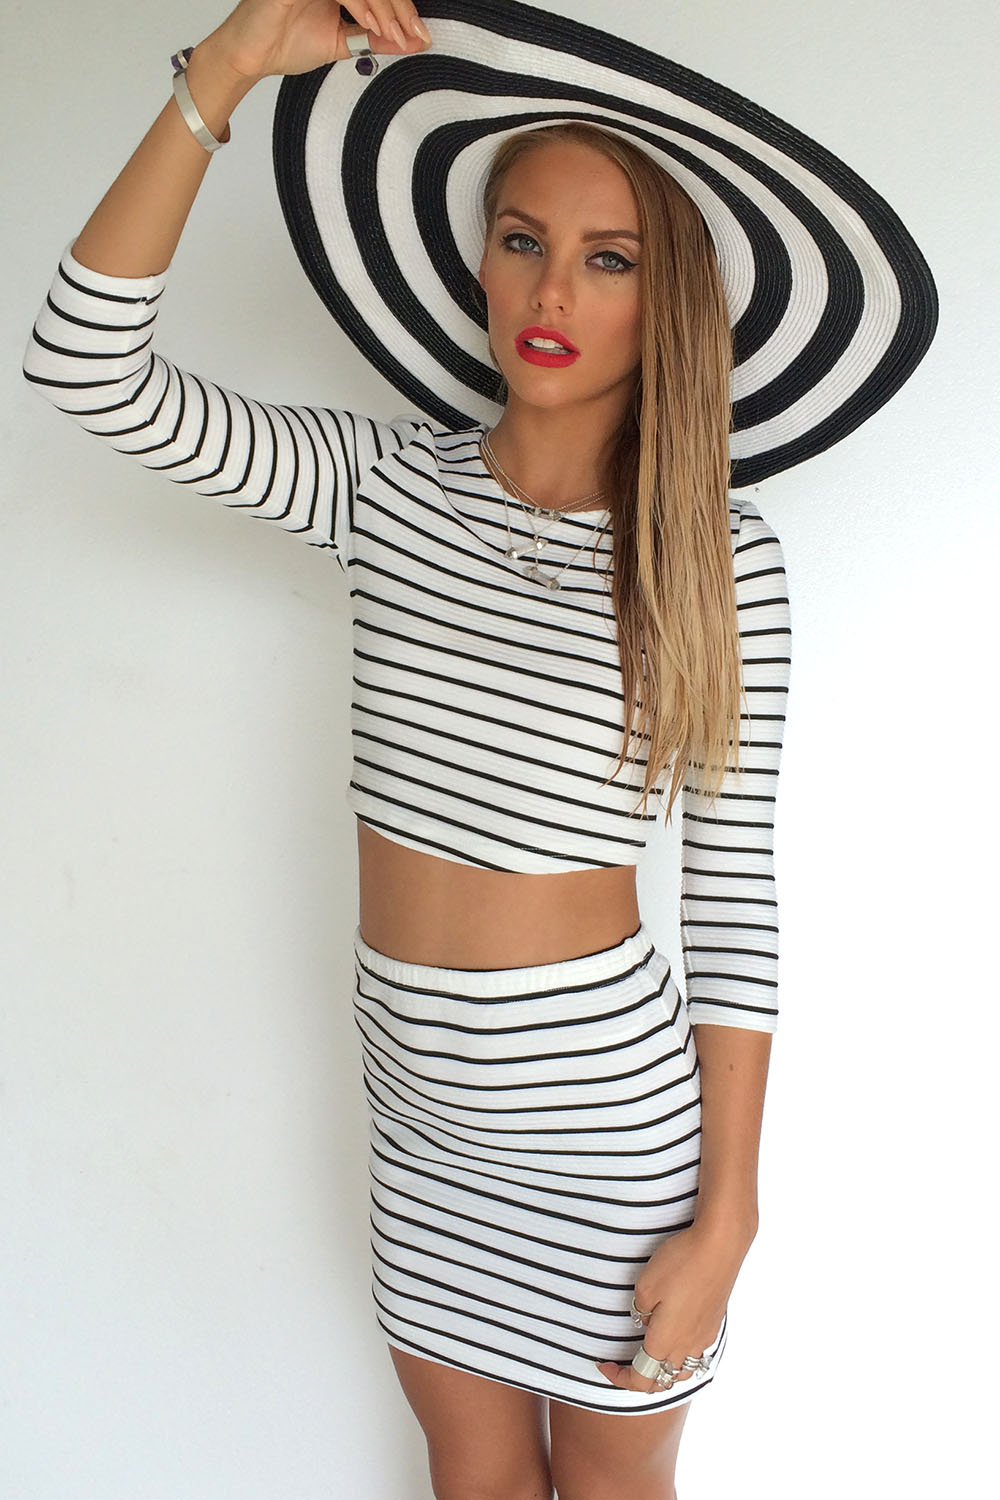 8aaff0025c blouse, striped skirt, striped shirt, crop tops, black and white -  Wheretoget